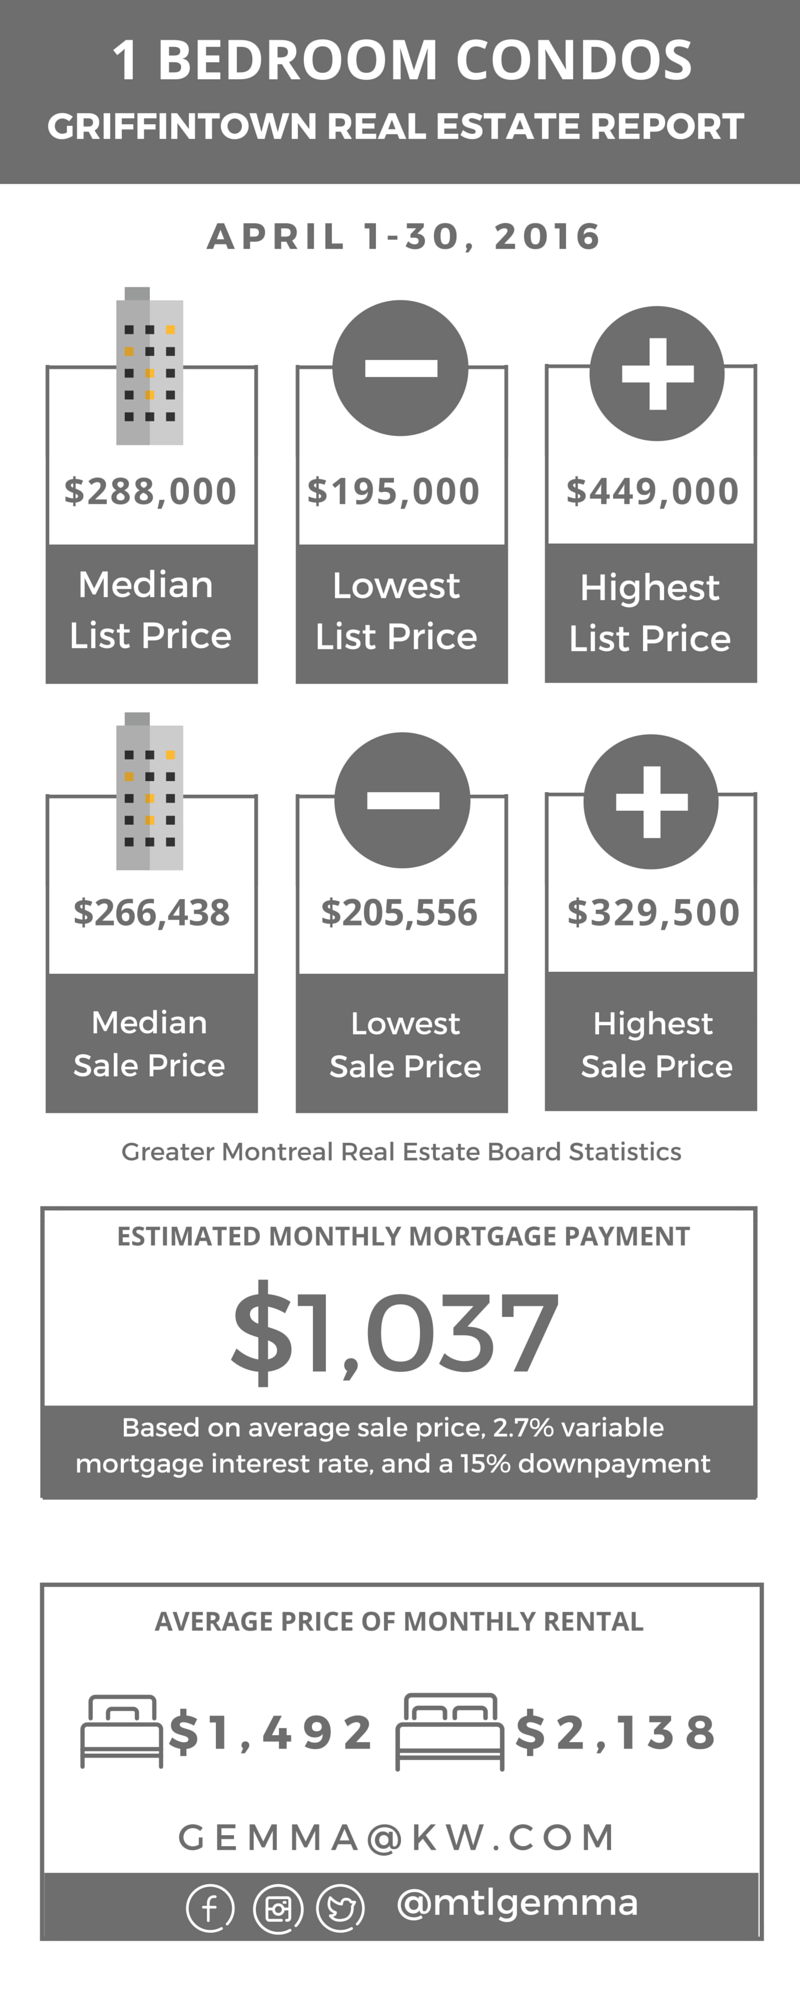 Griffintown Real Estate Report April 2016 02